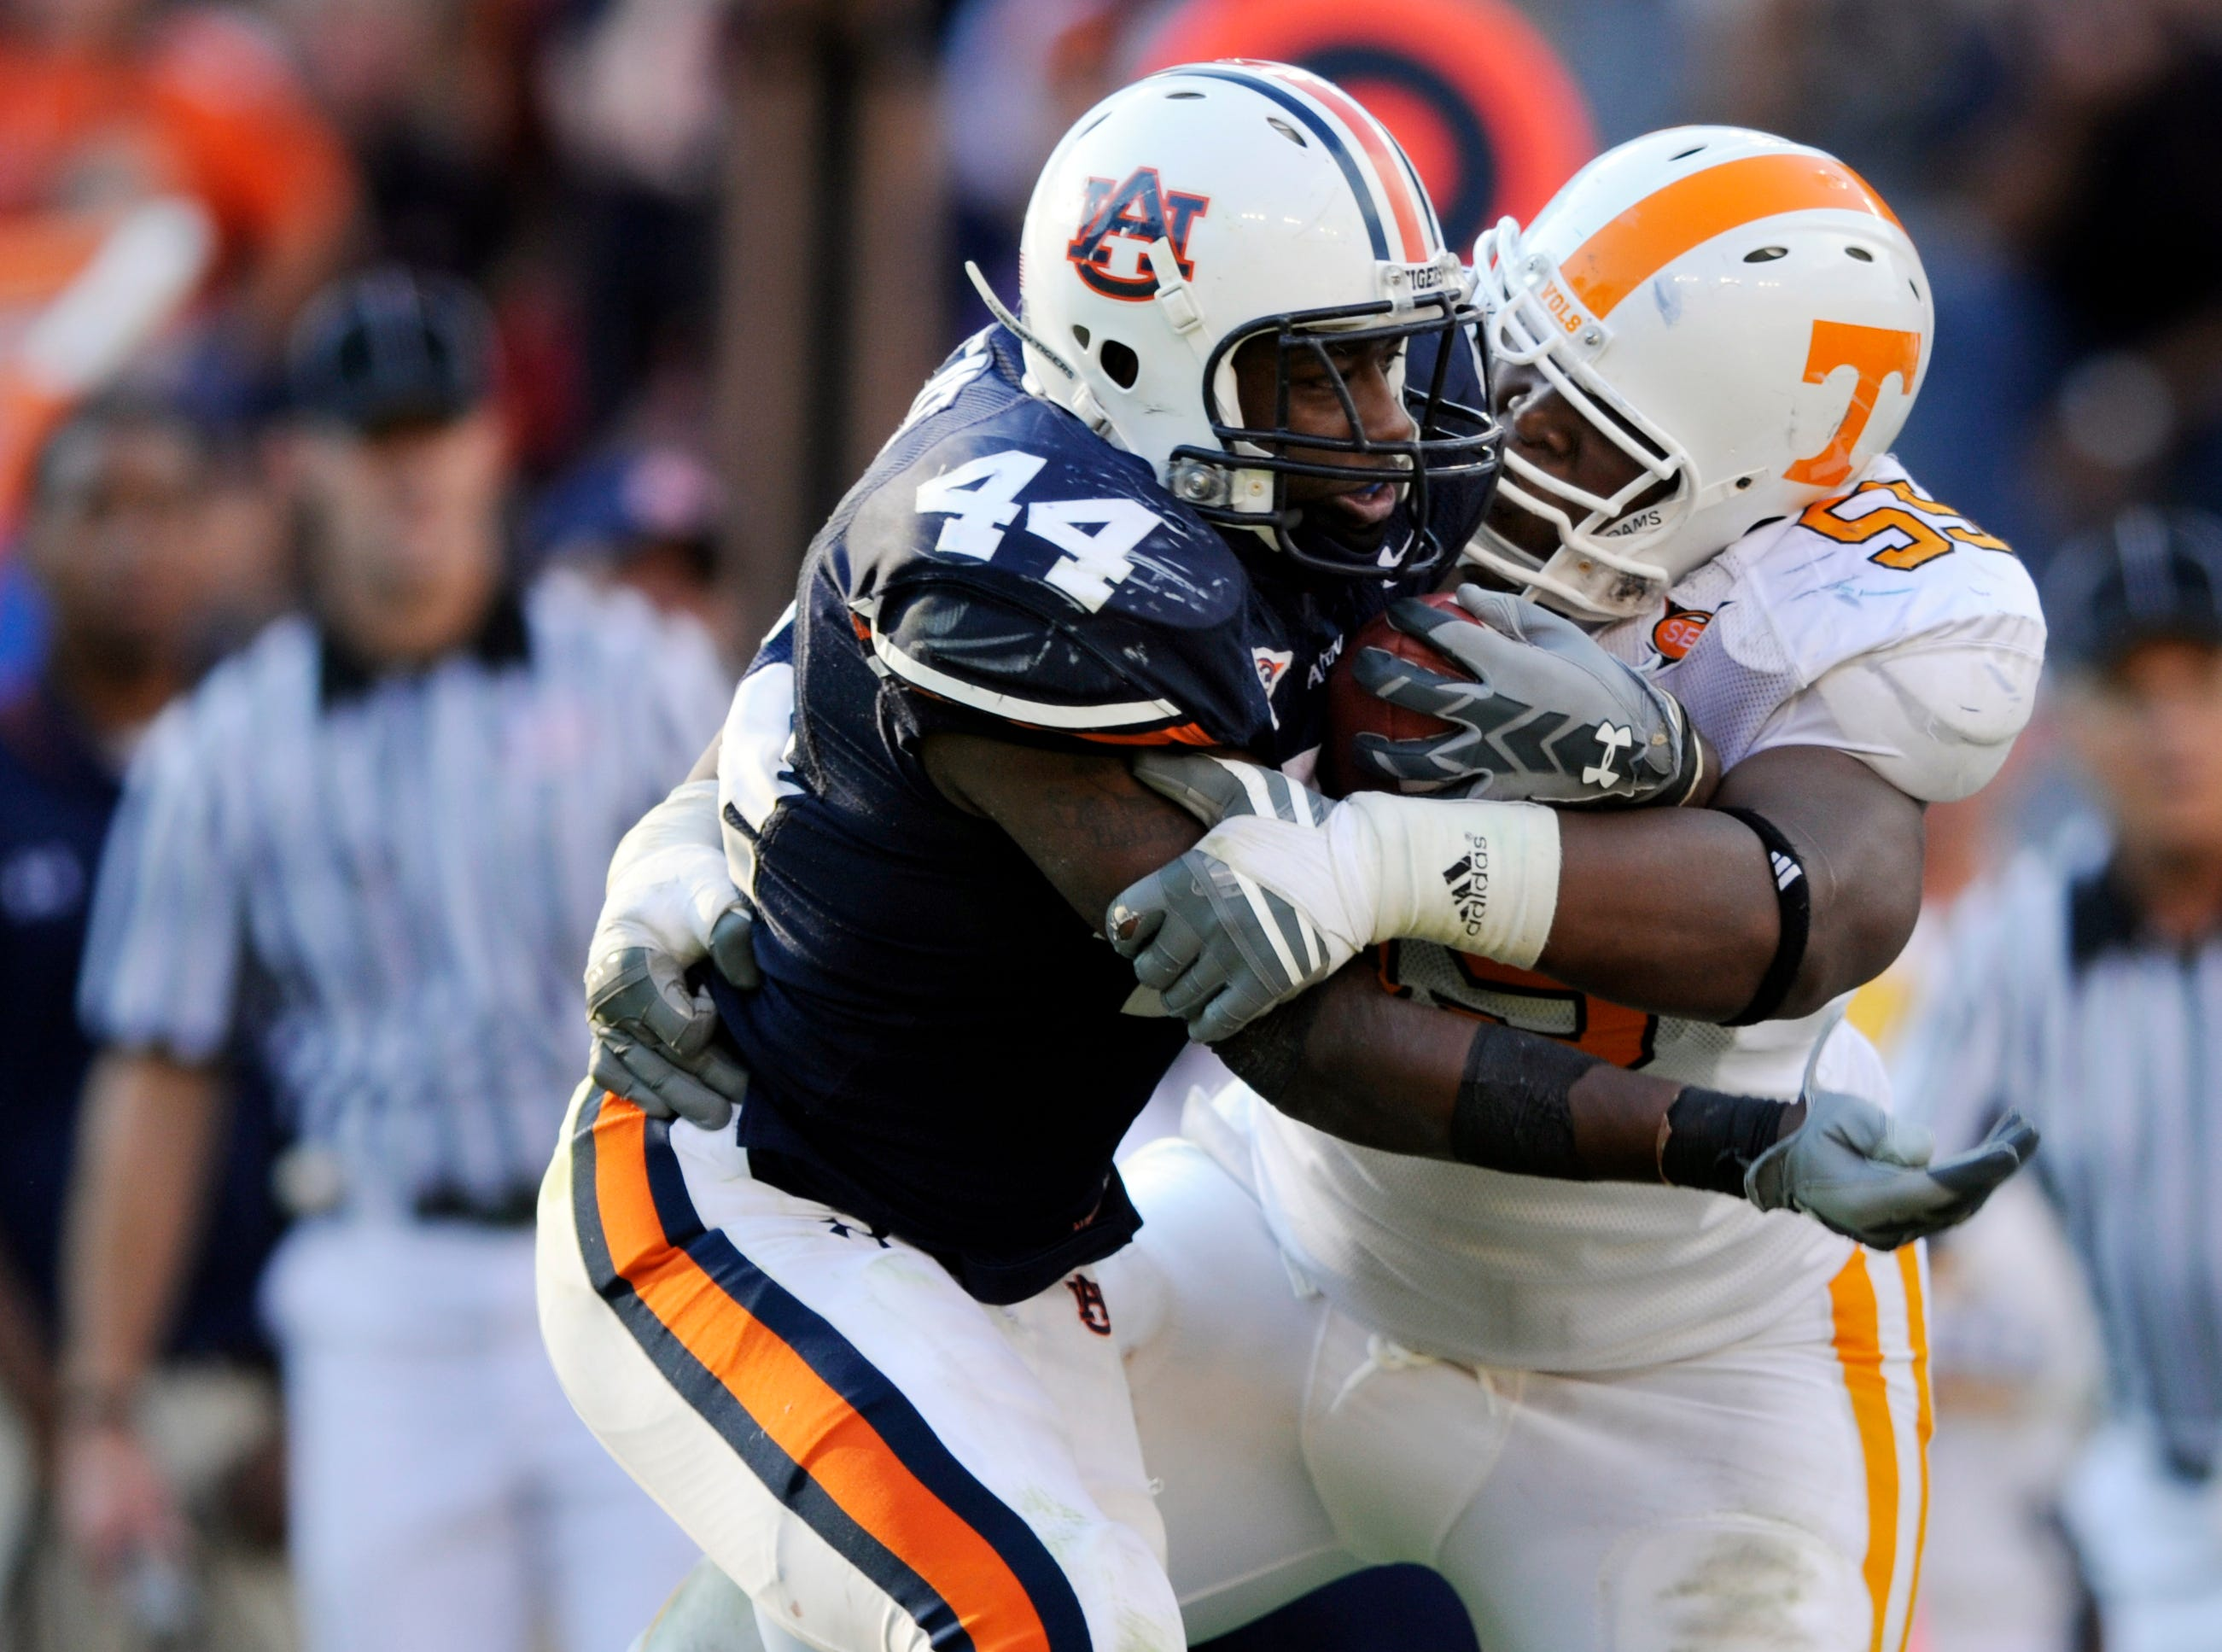 Tennessee defensive tackle Dan Williams (55) stops Auburn running back Ben Tate (44) Saturday at Jordan-Hare Stadium in Alabama in 2008. Auburn won the game 14-12, dropping Tennessee to 1-3 for the season.